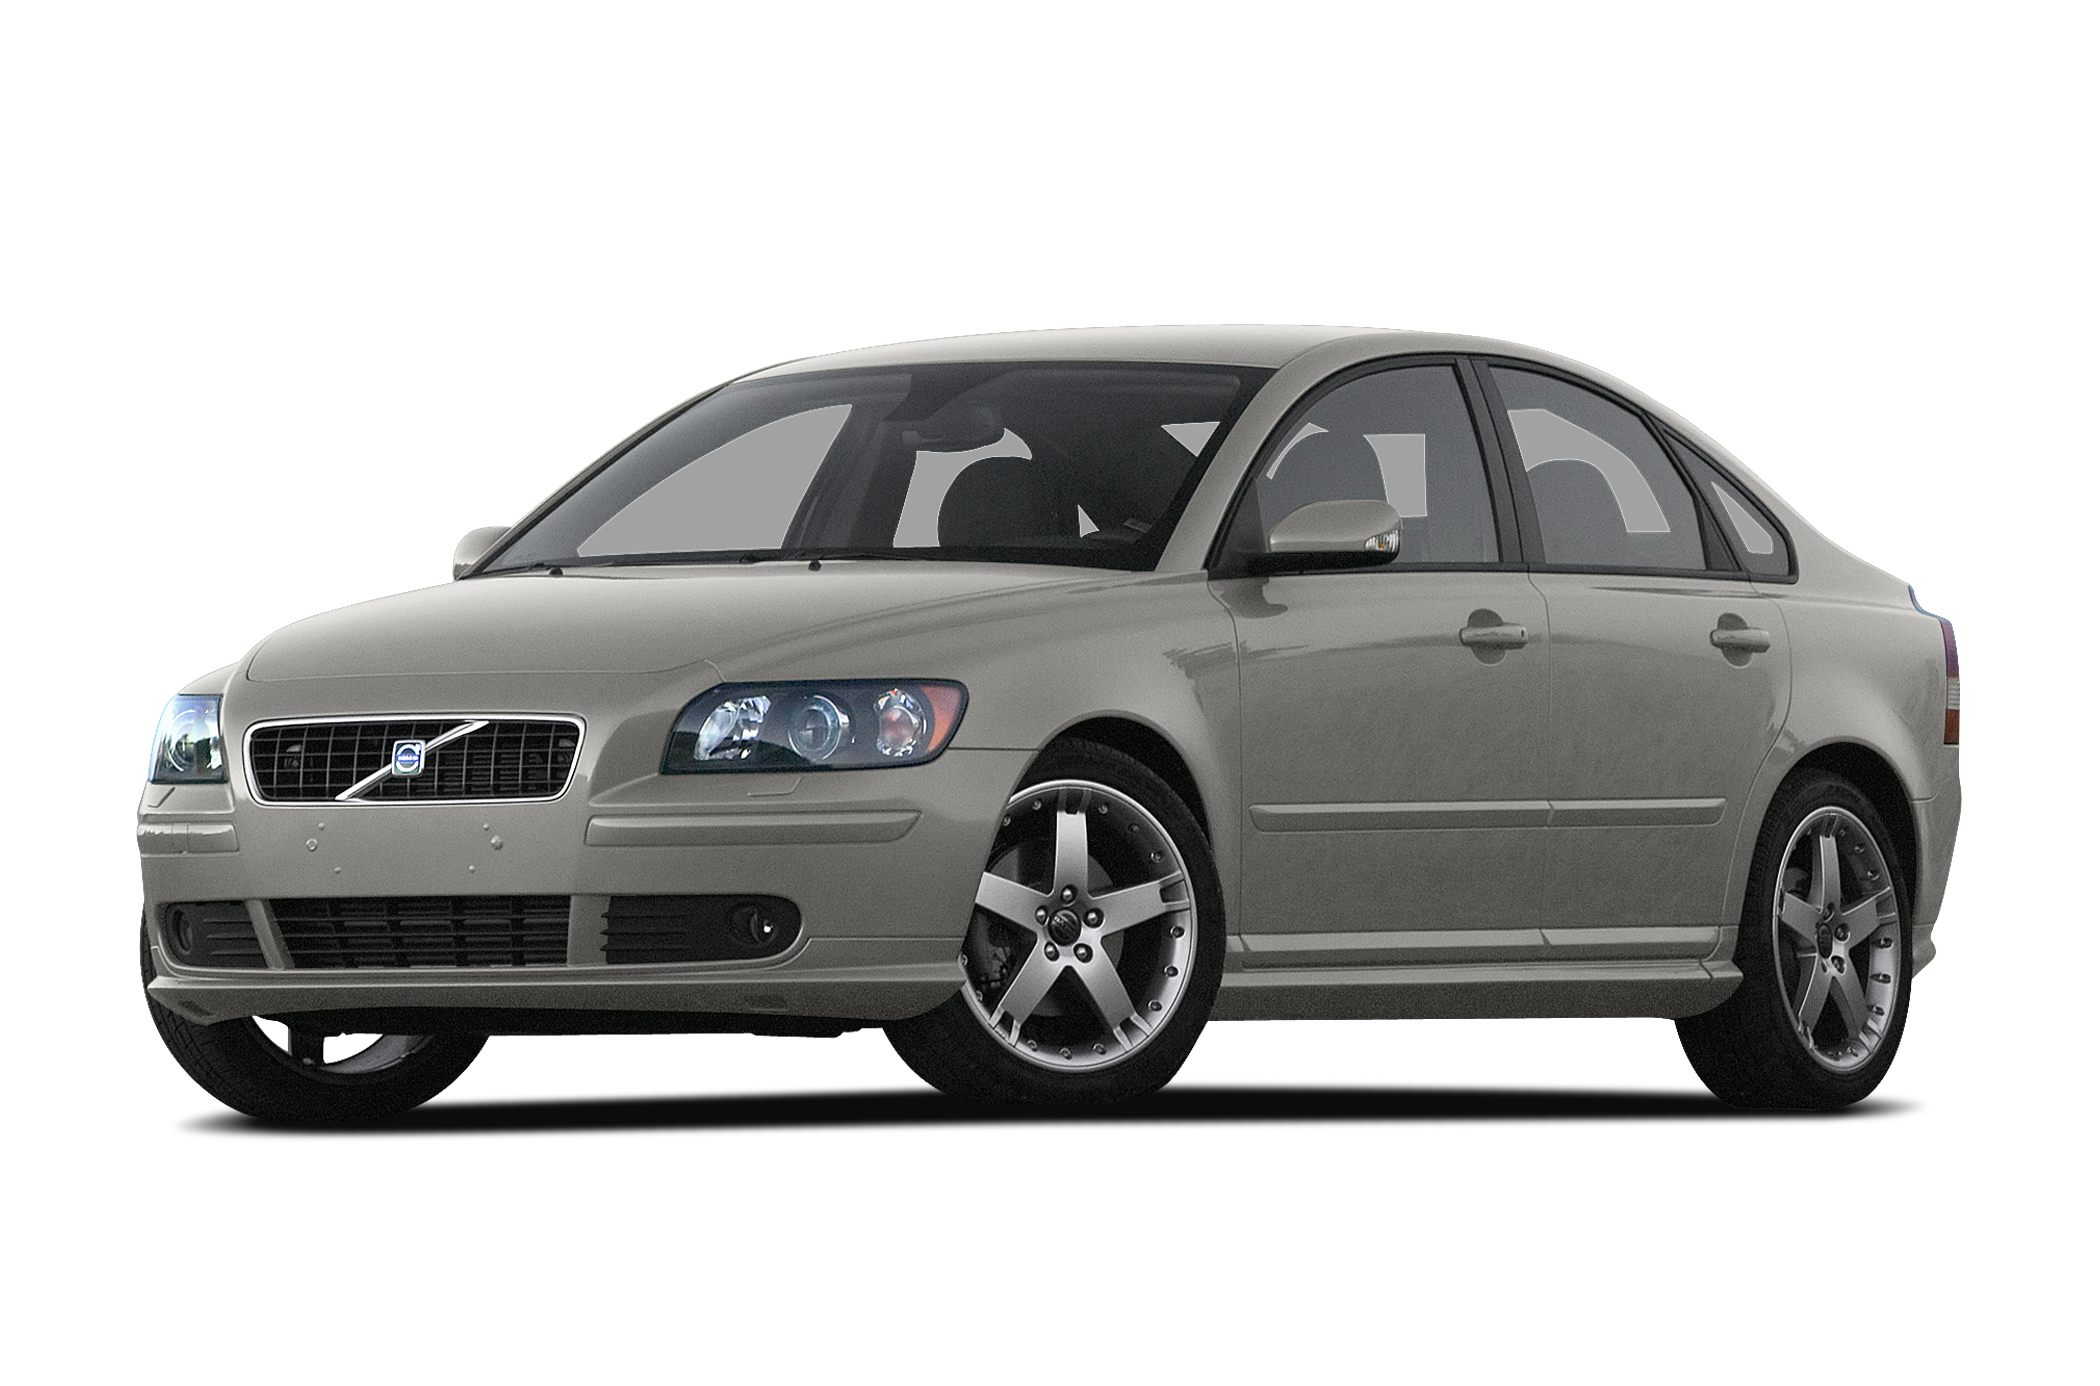 2007 Volvo S40 2.4i Sedan for sale in Hickory for $6,995 with 138,150 miles